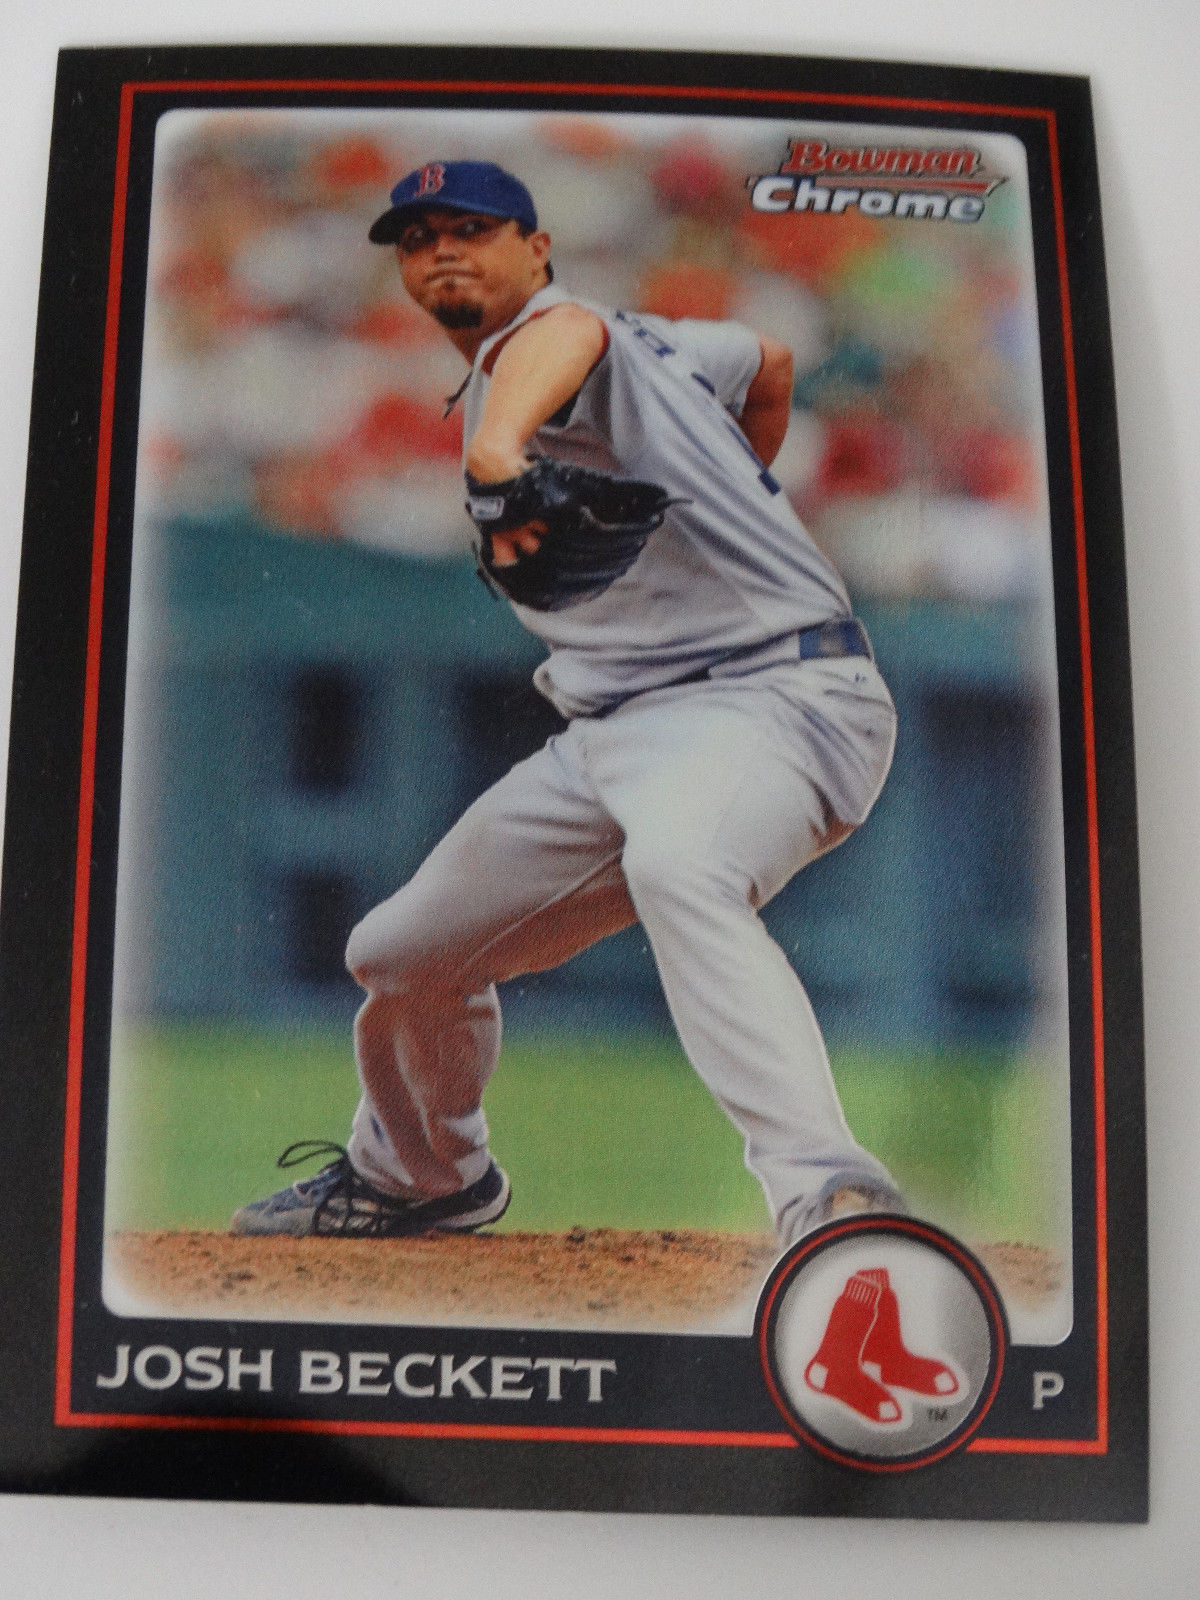 Primary image for 2010 Bowman Chrome #7 Josh Beckett Boston Red Sox Baseball Card